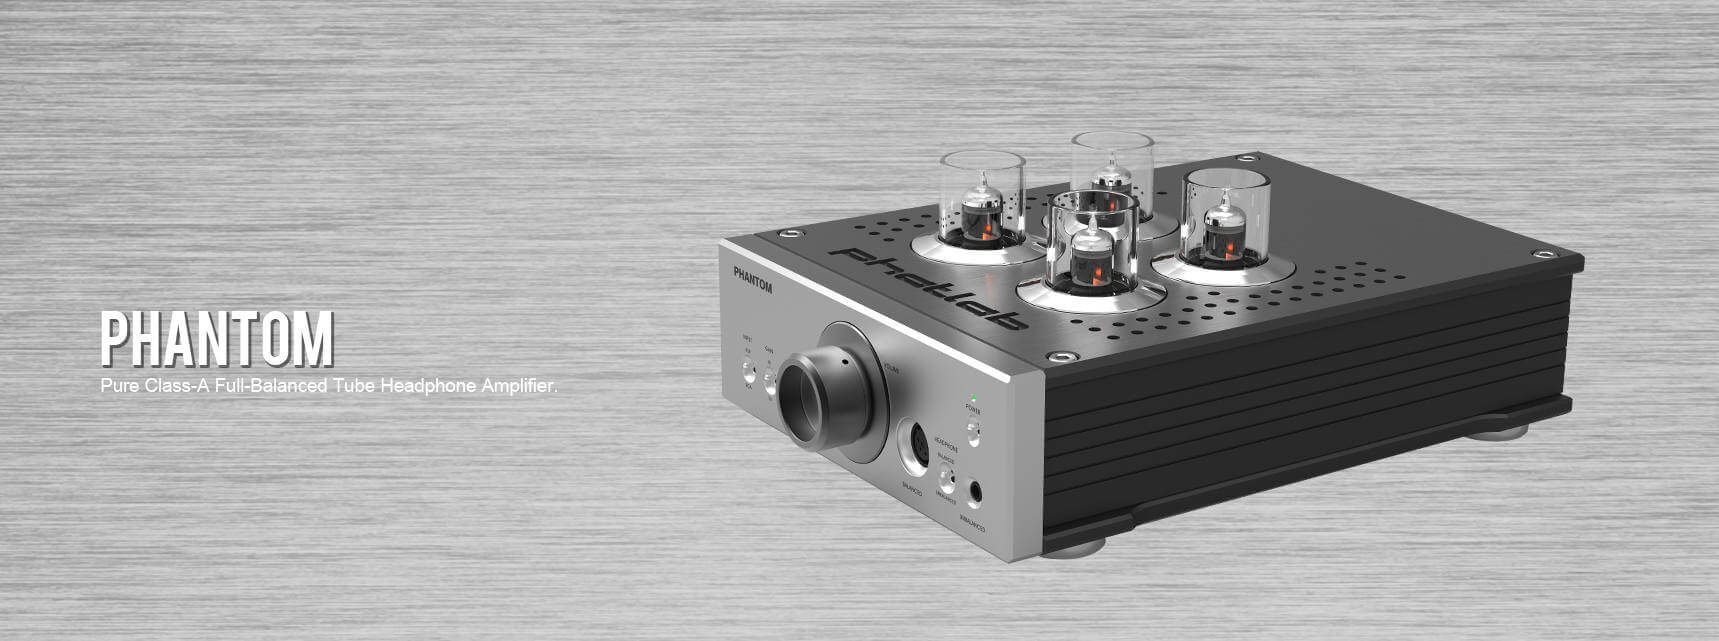 Phatlab How To Build Headphone Class A Amplifier Fully Balanced Tube From Ground Up